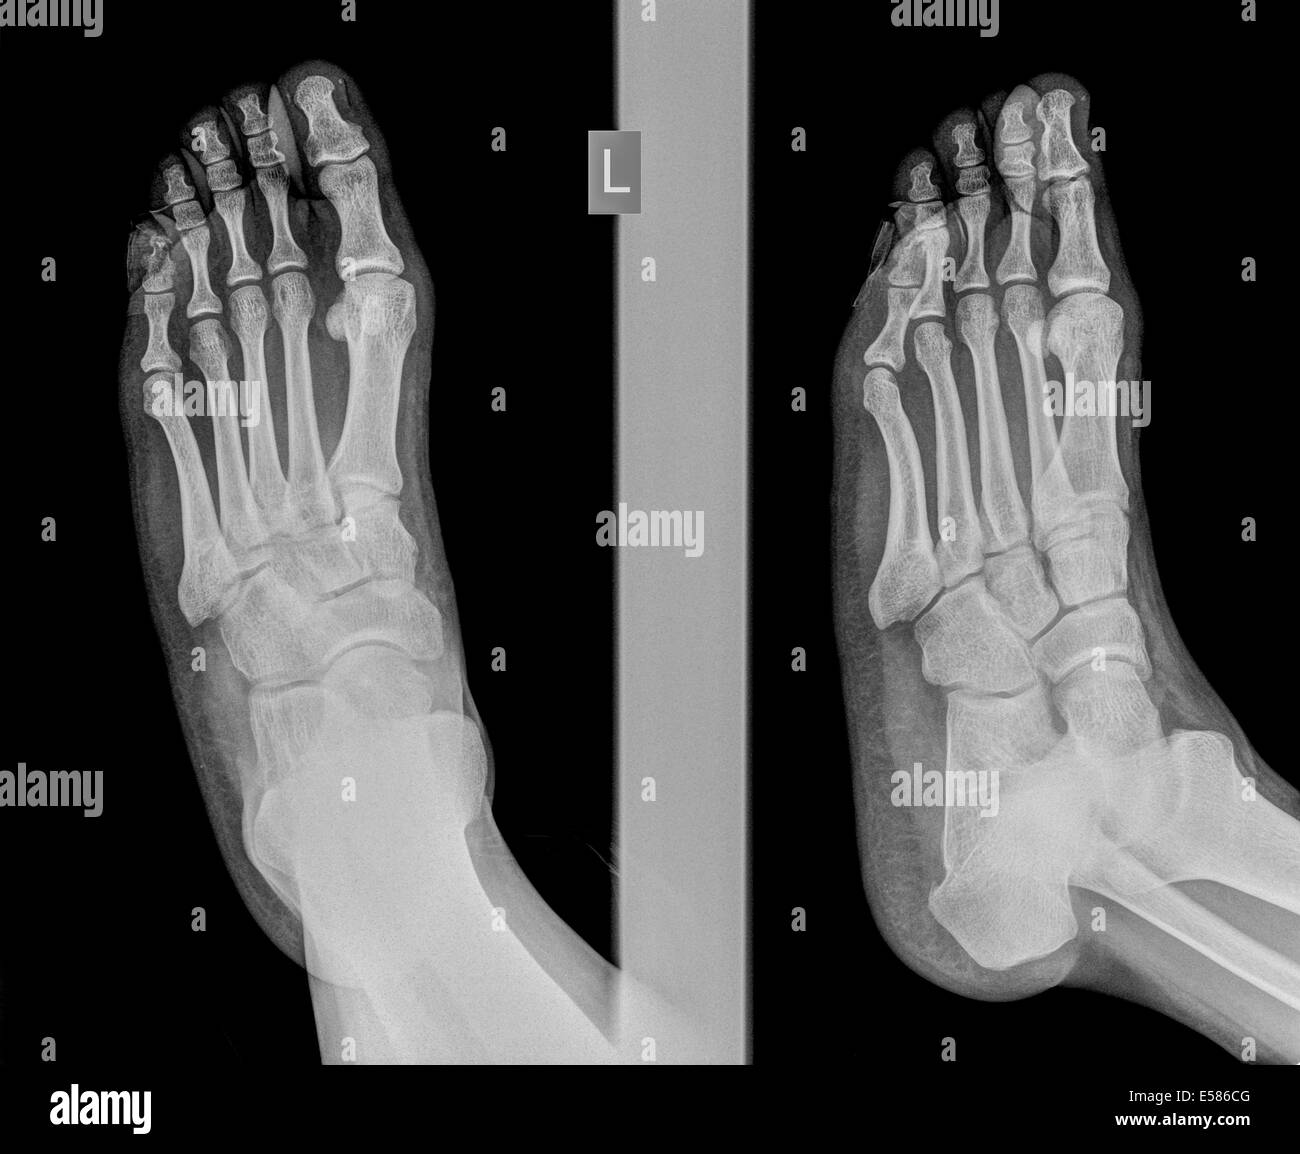 Foot Ankle Bones Anatomy Male Stock Photos & Foot Ankle Bones ...